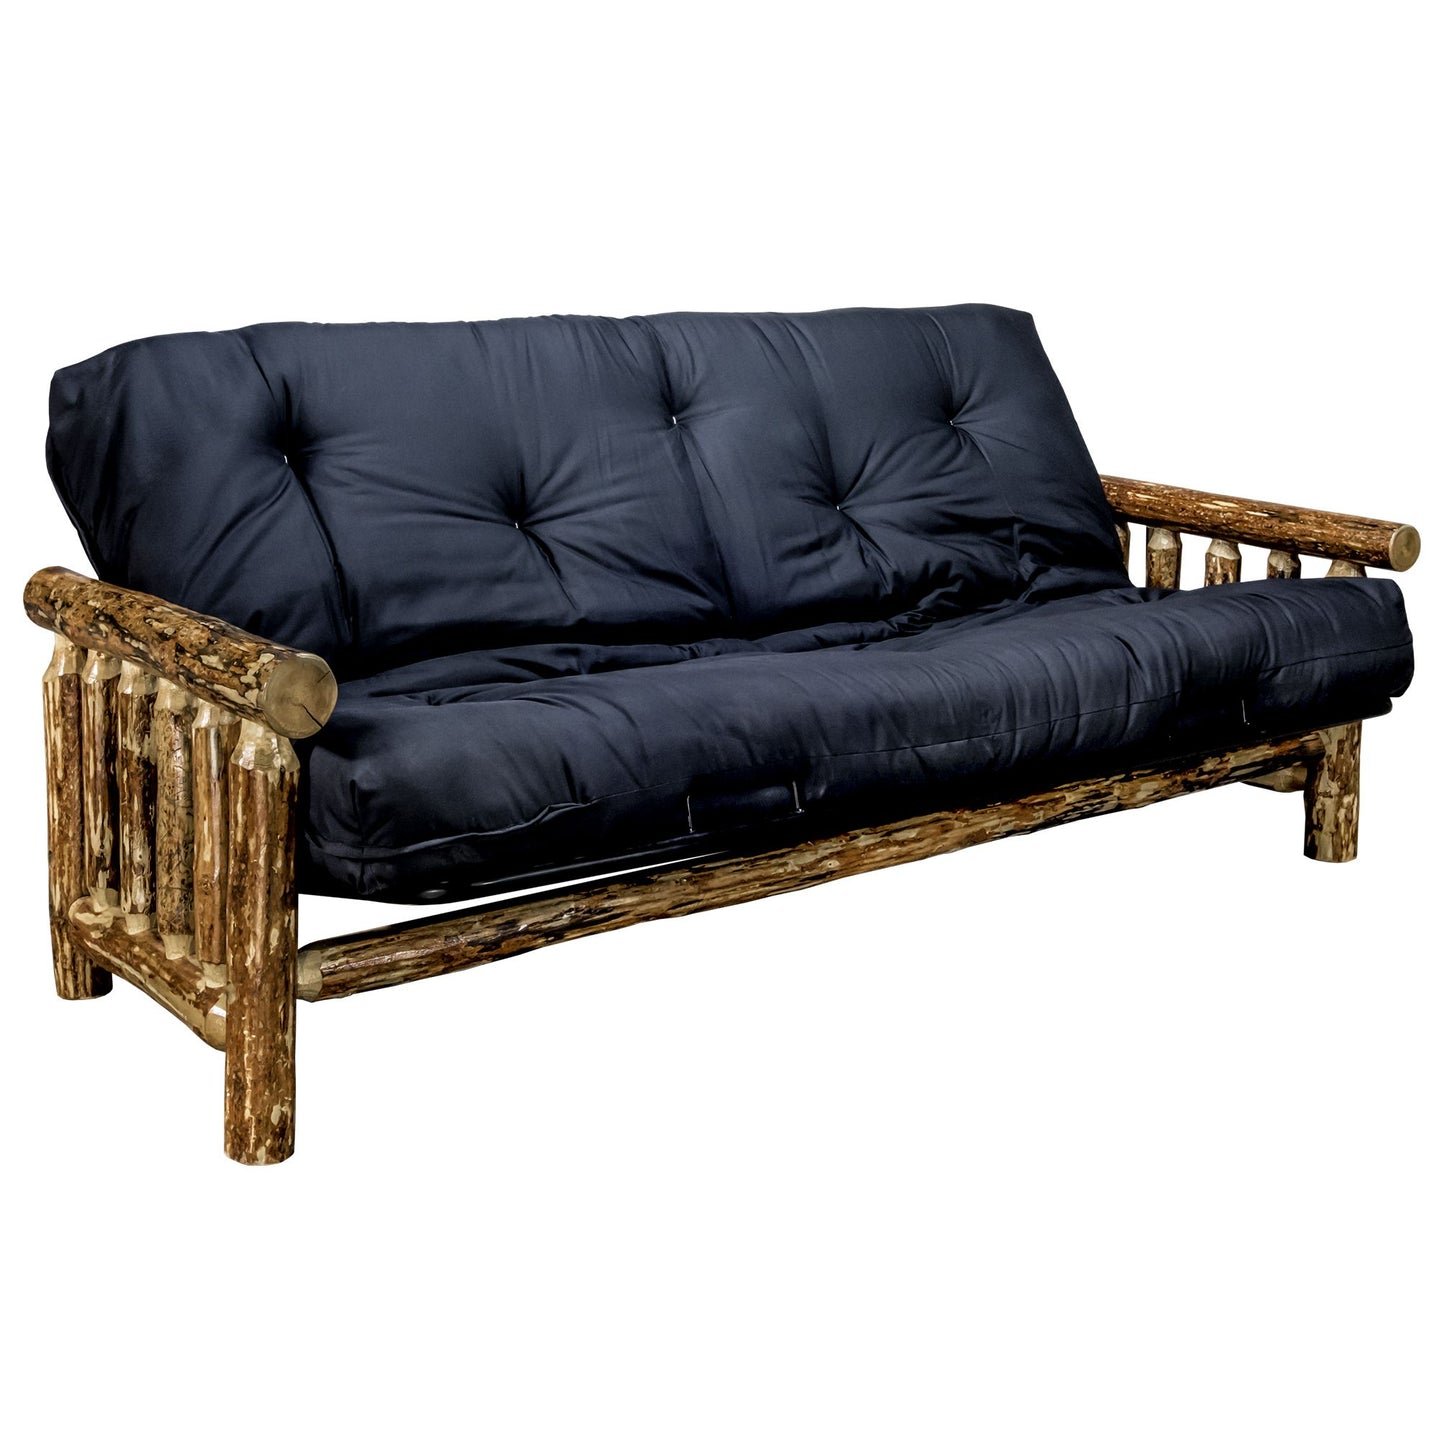 Glacier Country Rustic Futon w/ Mattress